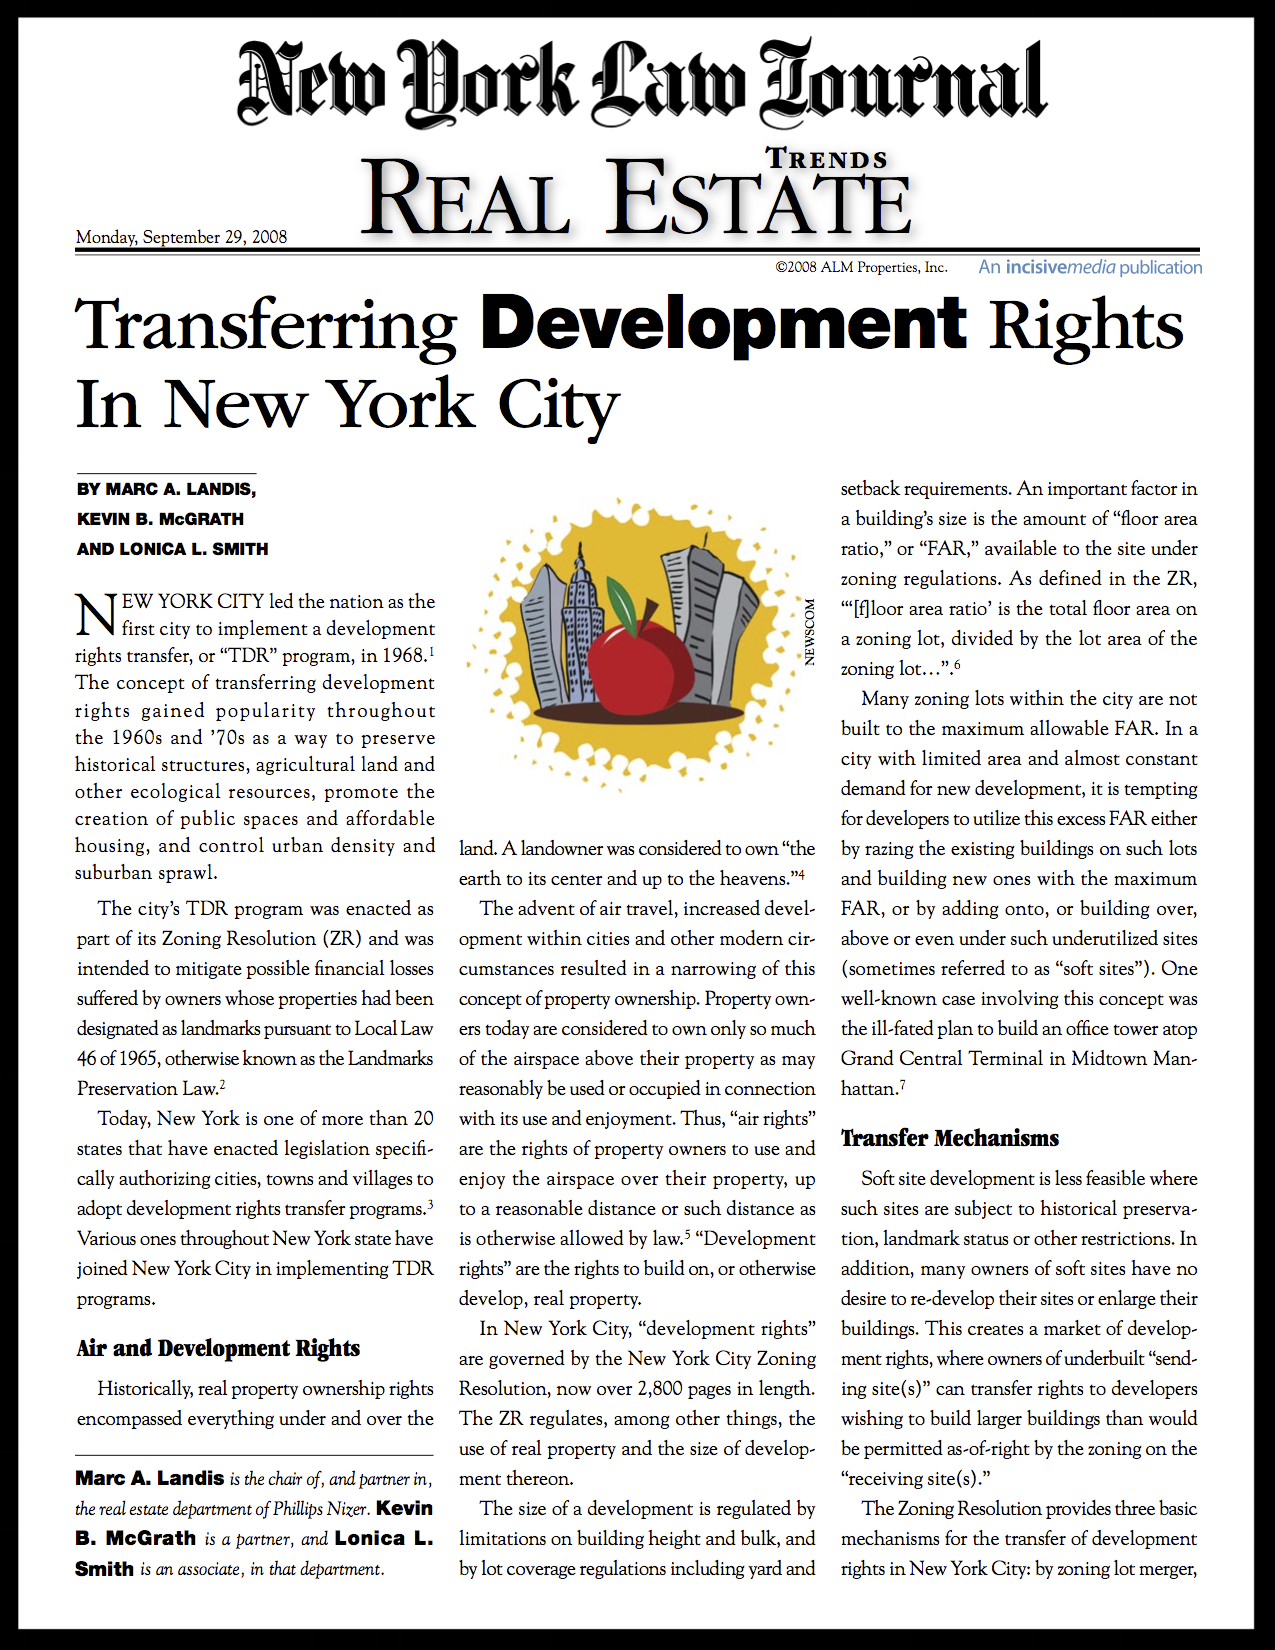 2009-NYLJ-Transferring-Development-Rights-in-New-York-City.png